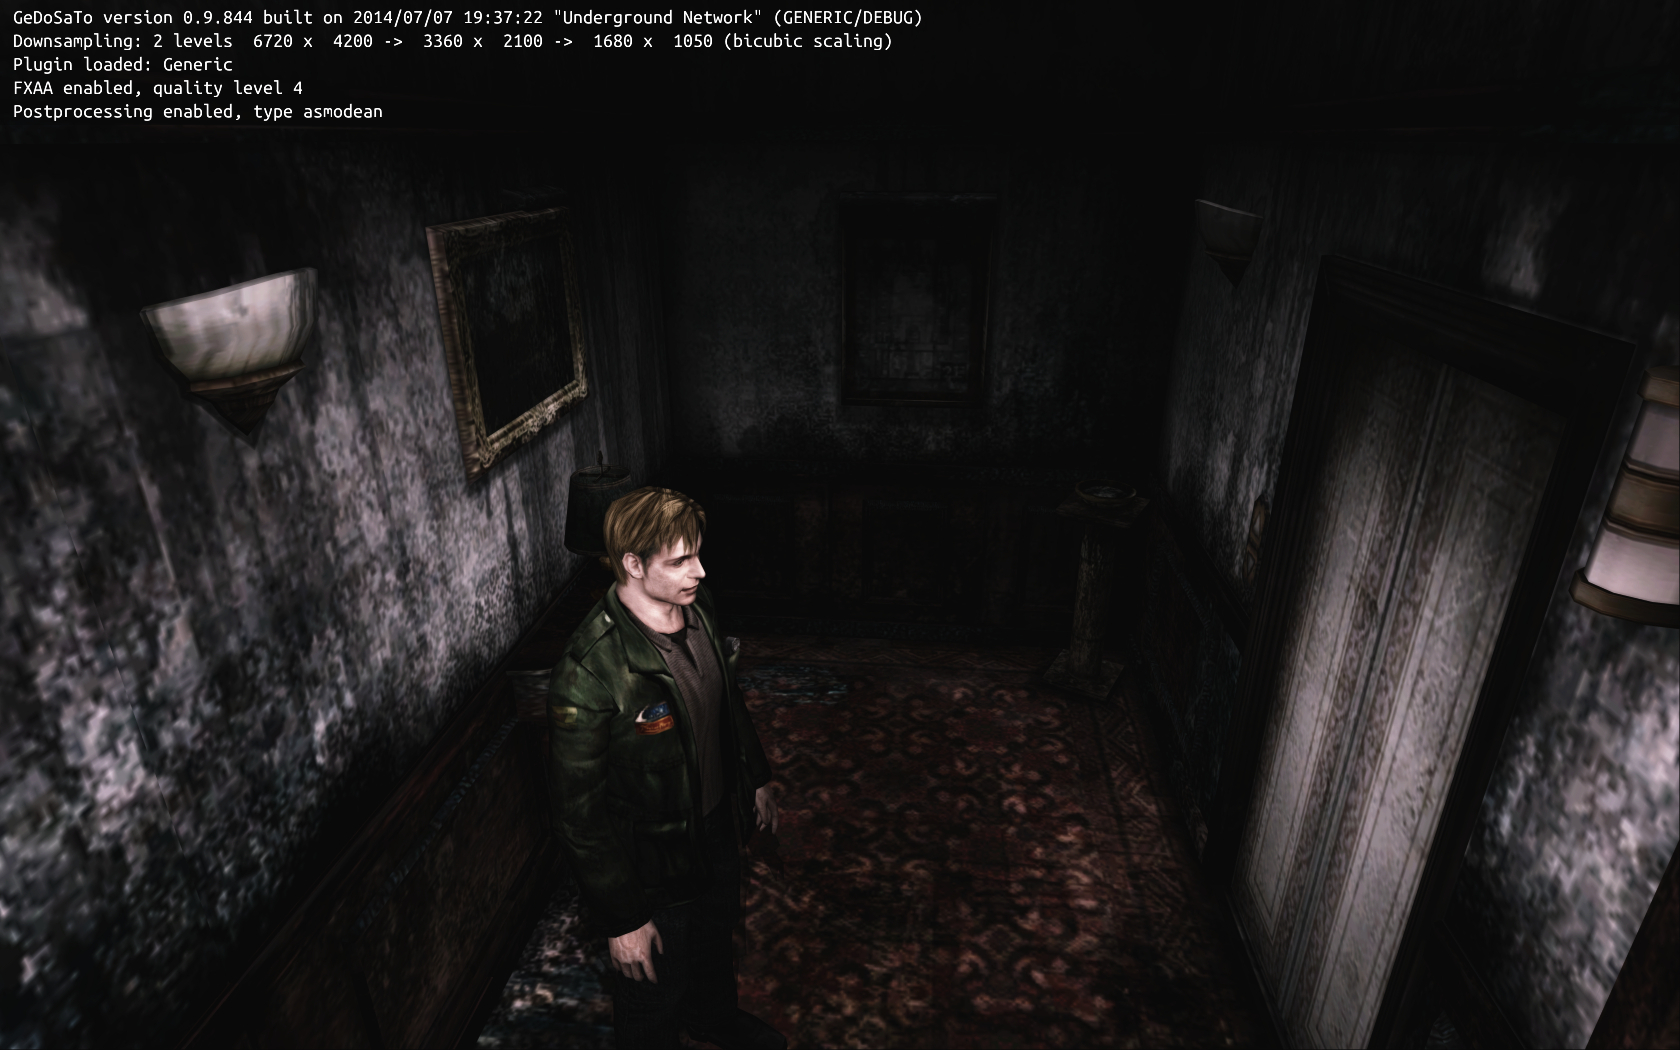 The Silent Hill 2, 3 & 4 PC thread - A guide to a better HD